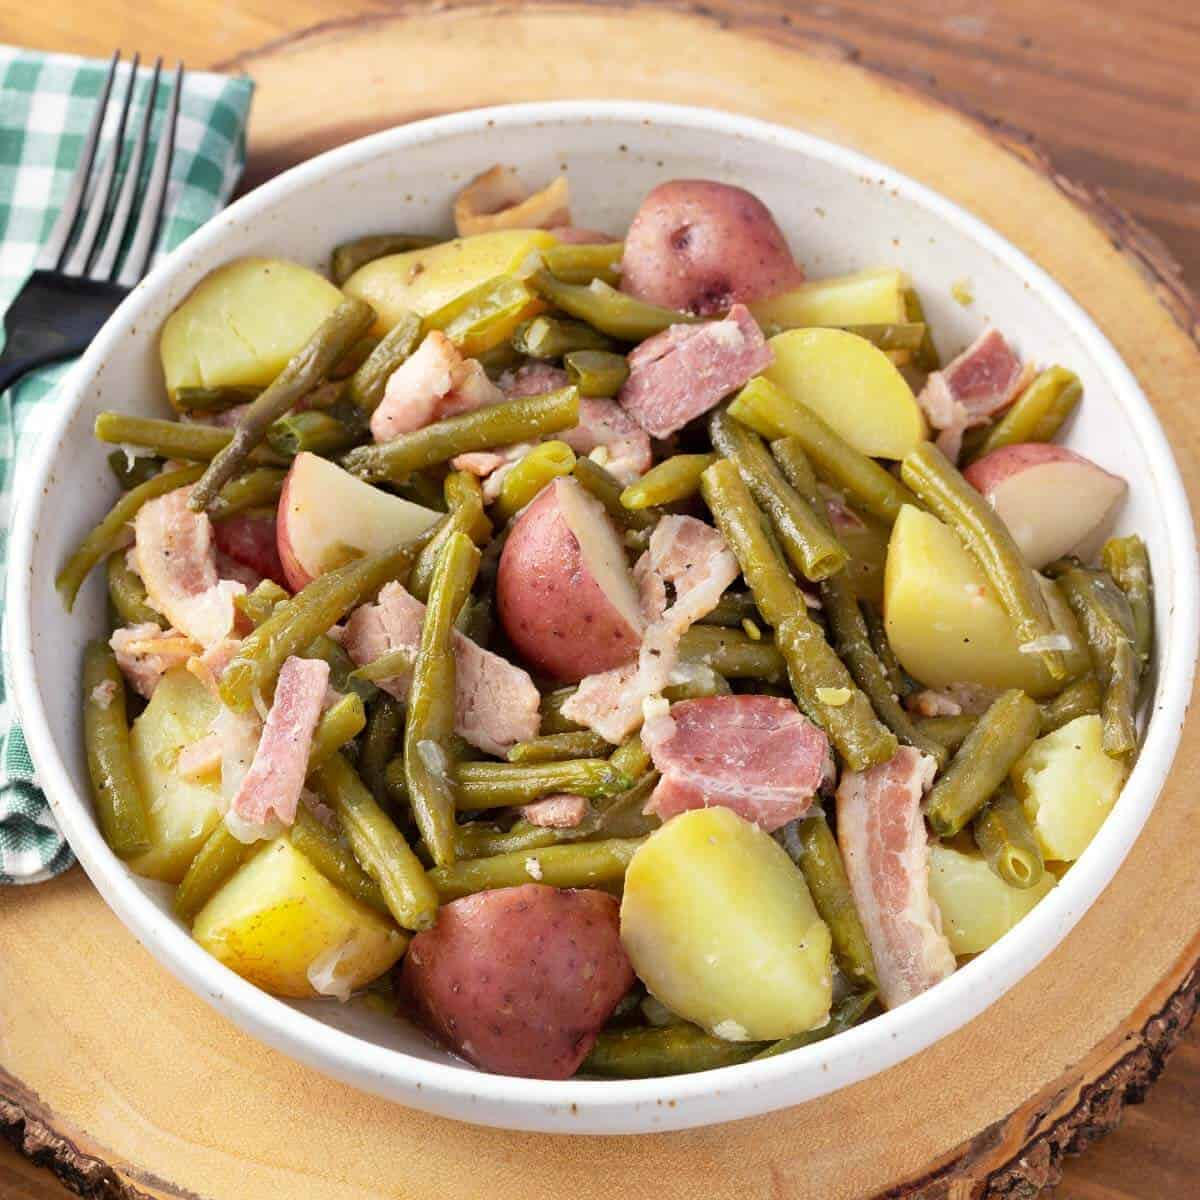 Southern Green Beans Bacon Potatoes in a white bowl on wood